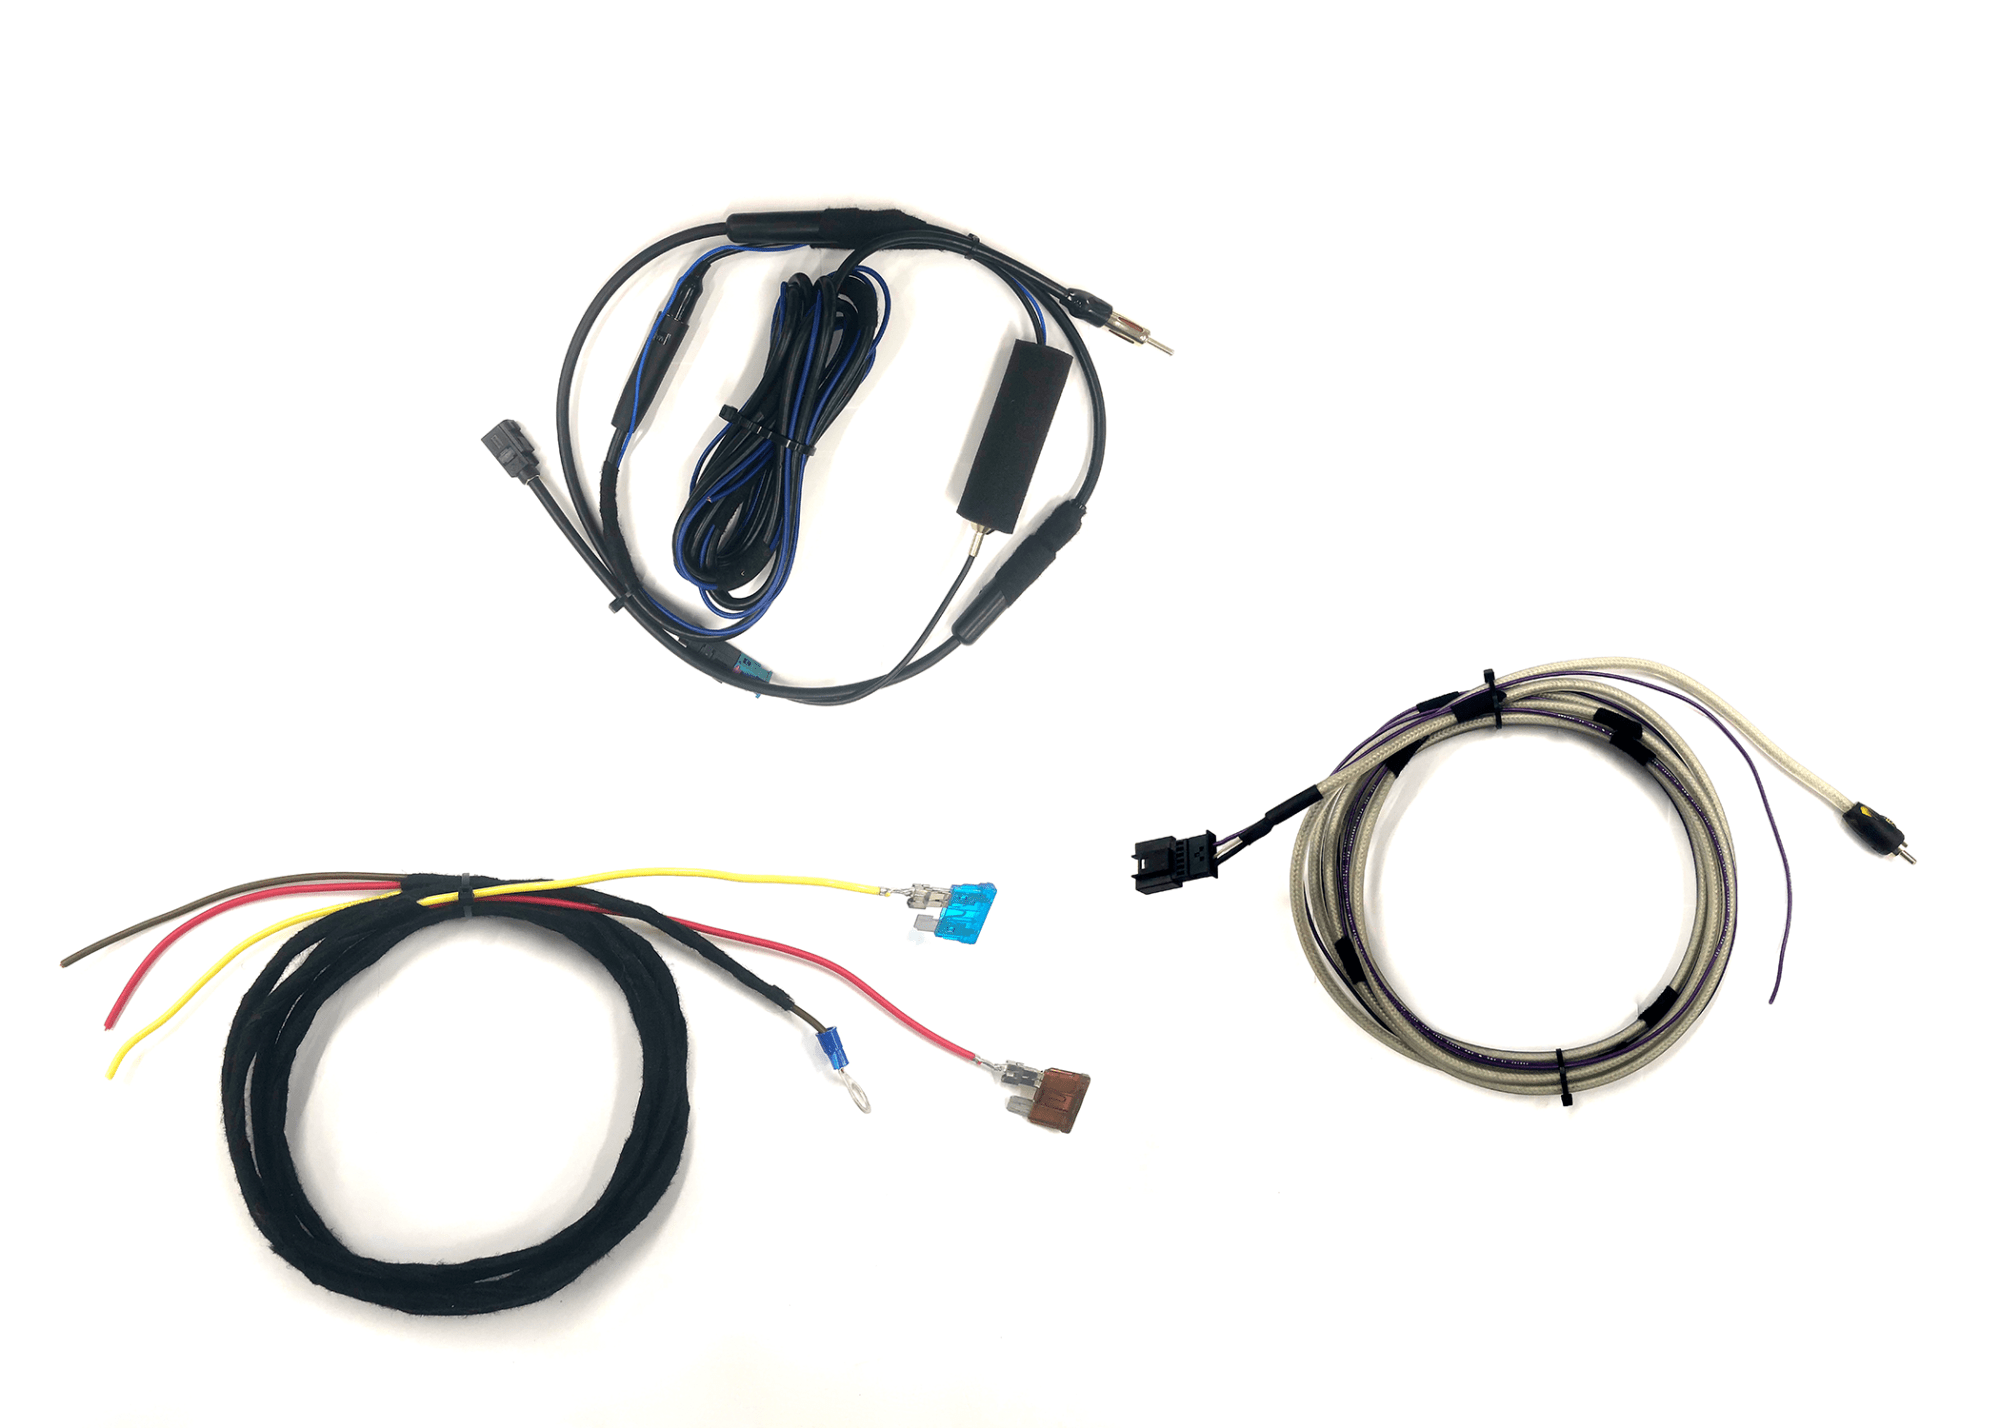 hight resolution of plug play aftermarket radio harness kit 2019 sprinter 907